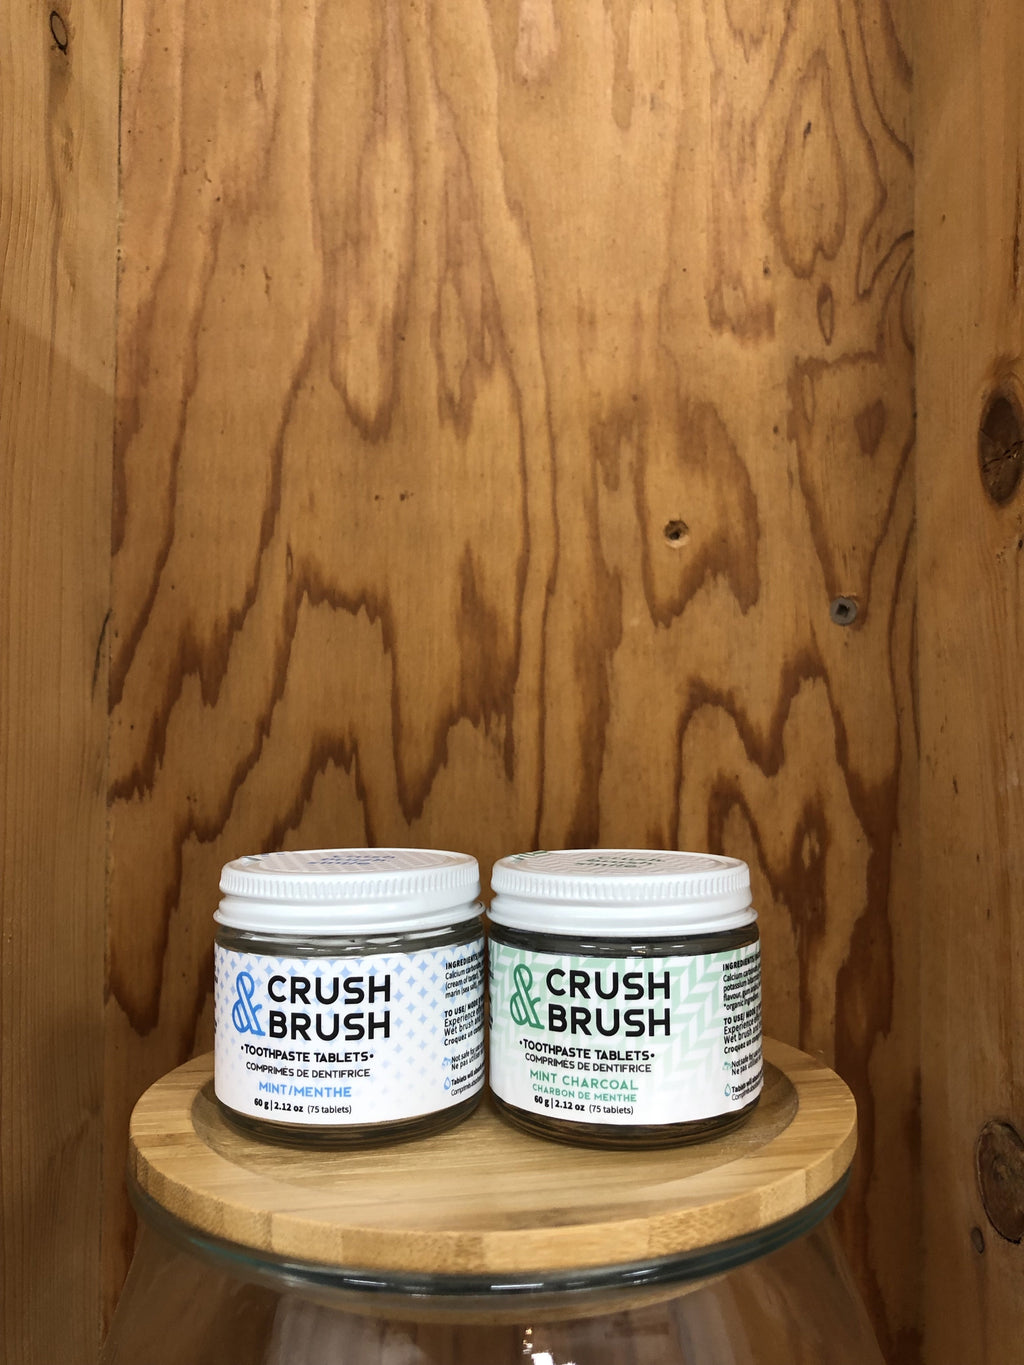 Nelson Naturals Crush and Brush Toothpaste Tablets- 80 tab jar